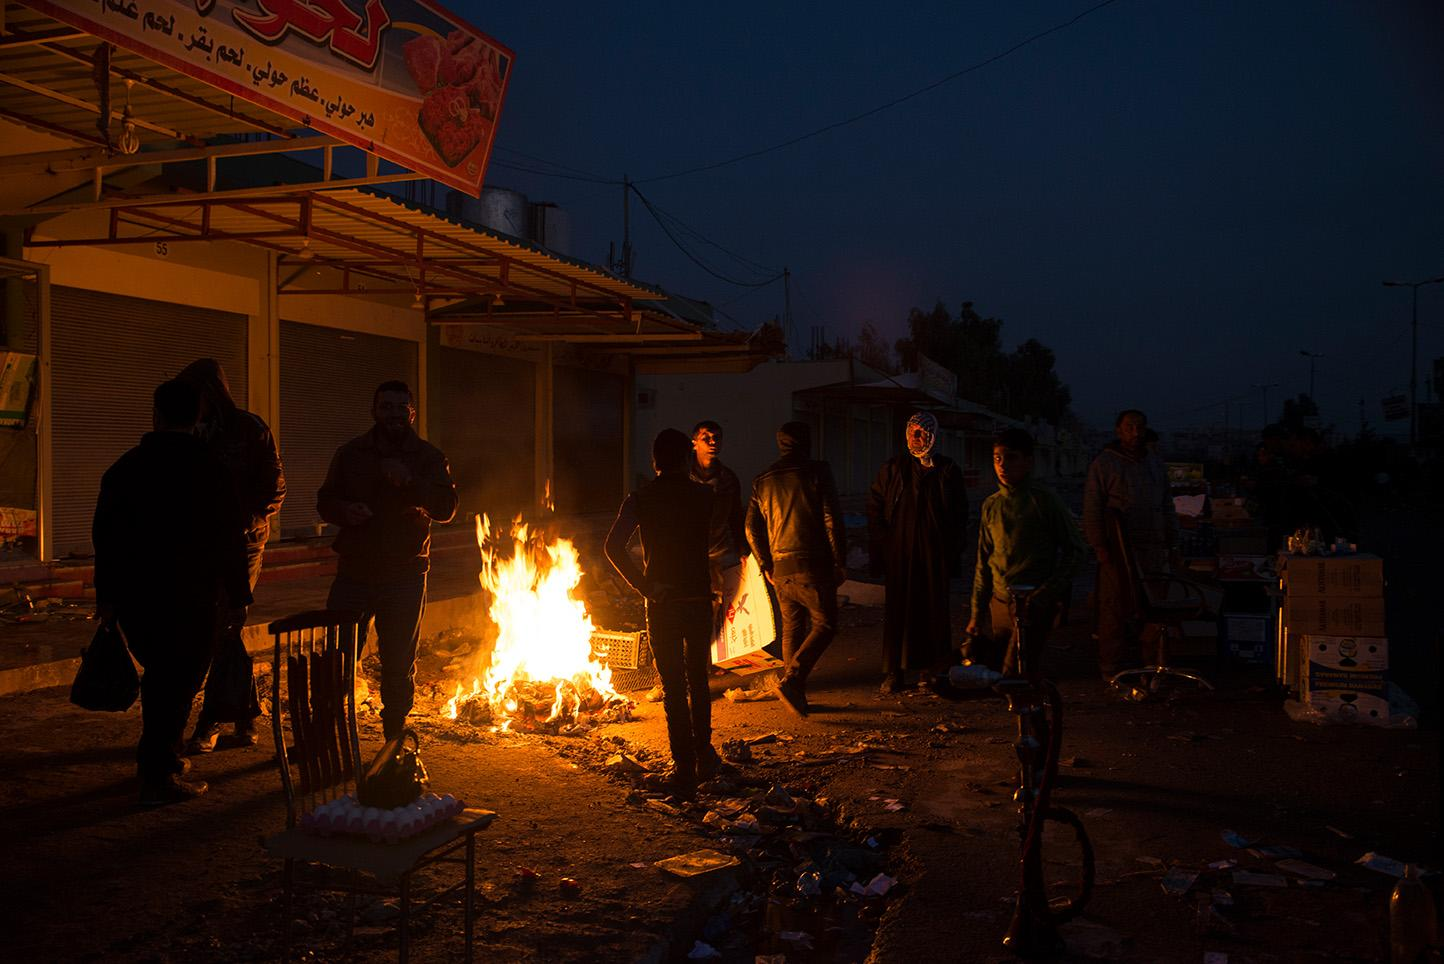 Men rest by a fire at the market in the recently liberated neighborhood of Al Sukar in eastern Mosul. ISIS has used drones with grenades to target busy areas where many civilians congregate. Though eastern Mosul is considered fully liberated by the Iraq Army, possible ISIS snipers, trip wires, and IEDs [improvised explosive devices] are still a threat to civilians. For more than two and half years Mosul, Iraq's second largest city has been under the control of the Islamic State of Iraq and the Levant (Isil). Since October of 2016, Iraq Special Forces have begun the battle to take back Mosul.